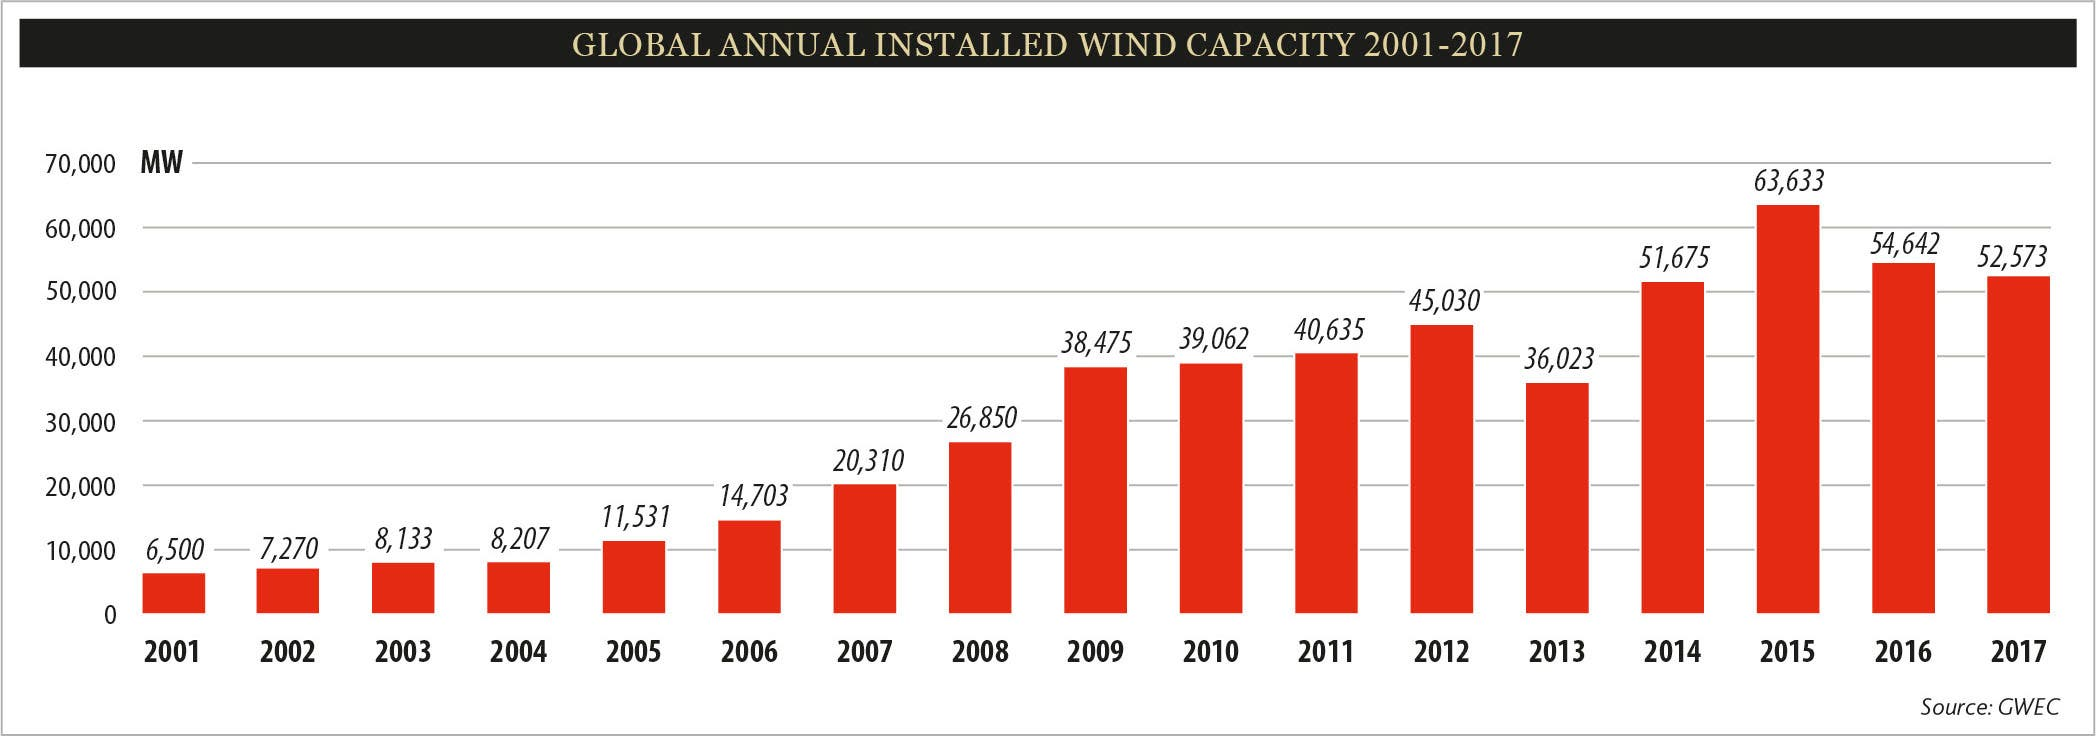 US Wind Installations Were Around The 7 GW Mark Followed By Germany With 65